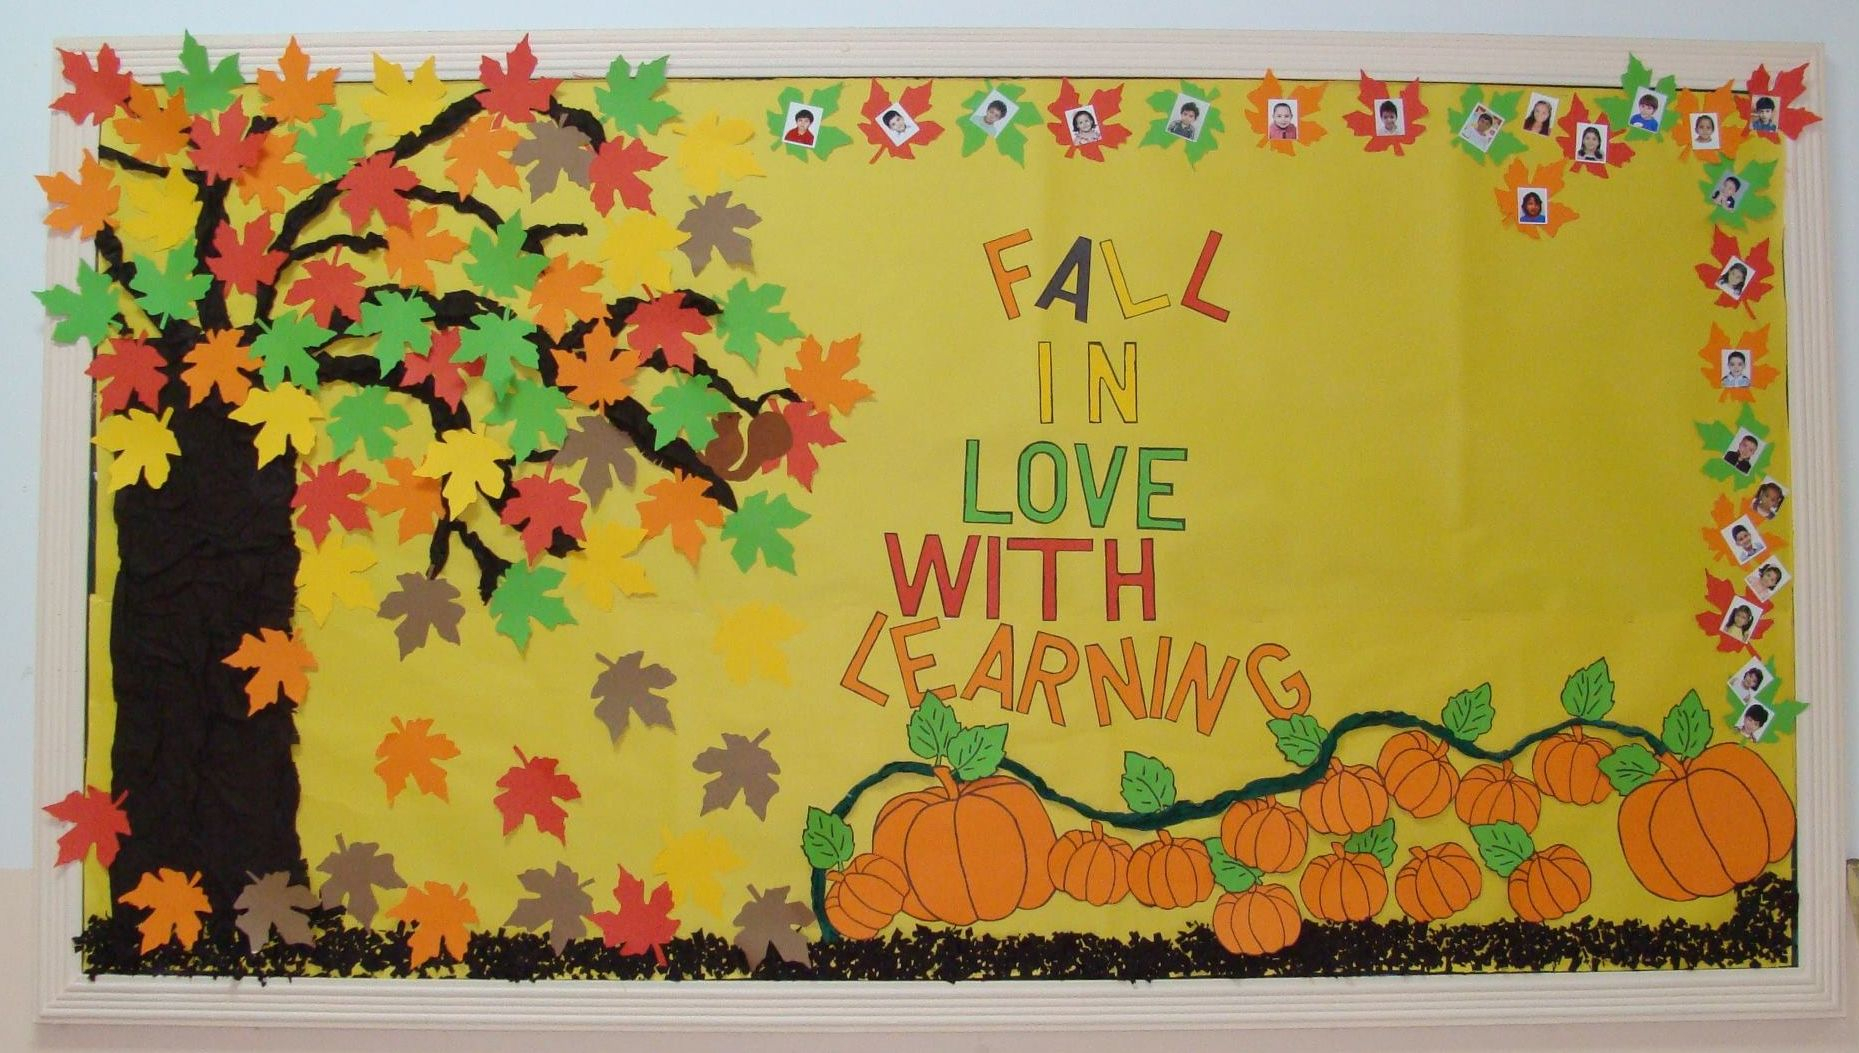 fall in love with learning! - fall bulletin board idea | fall